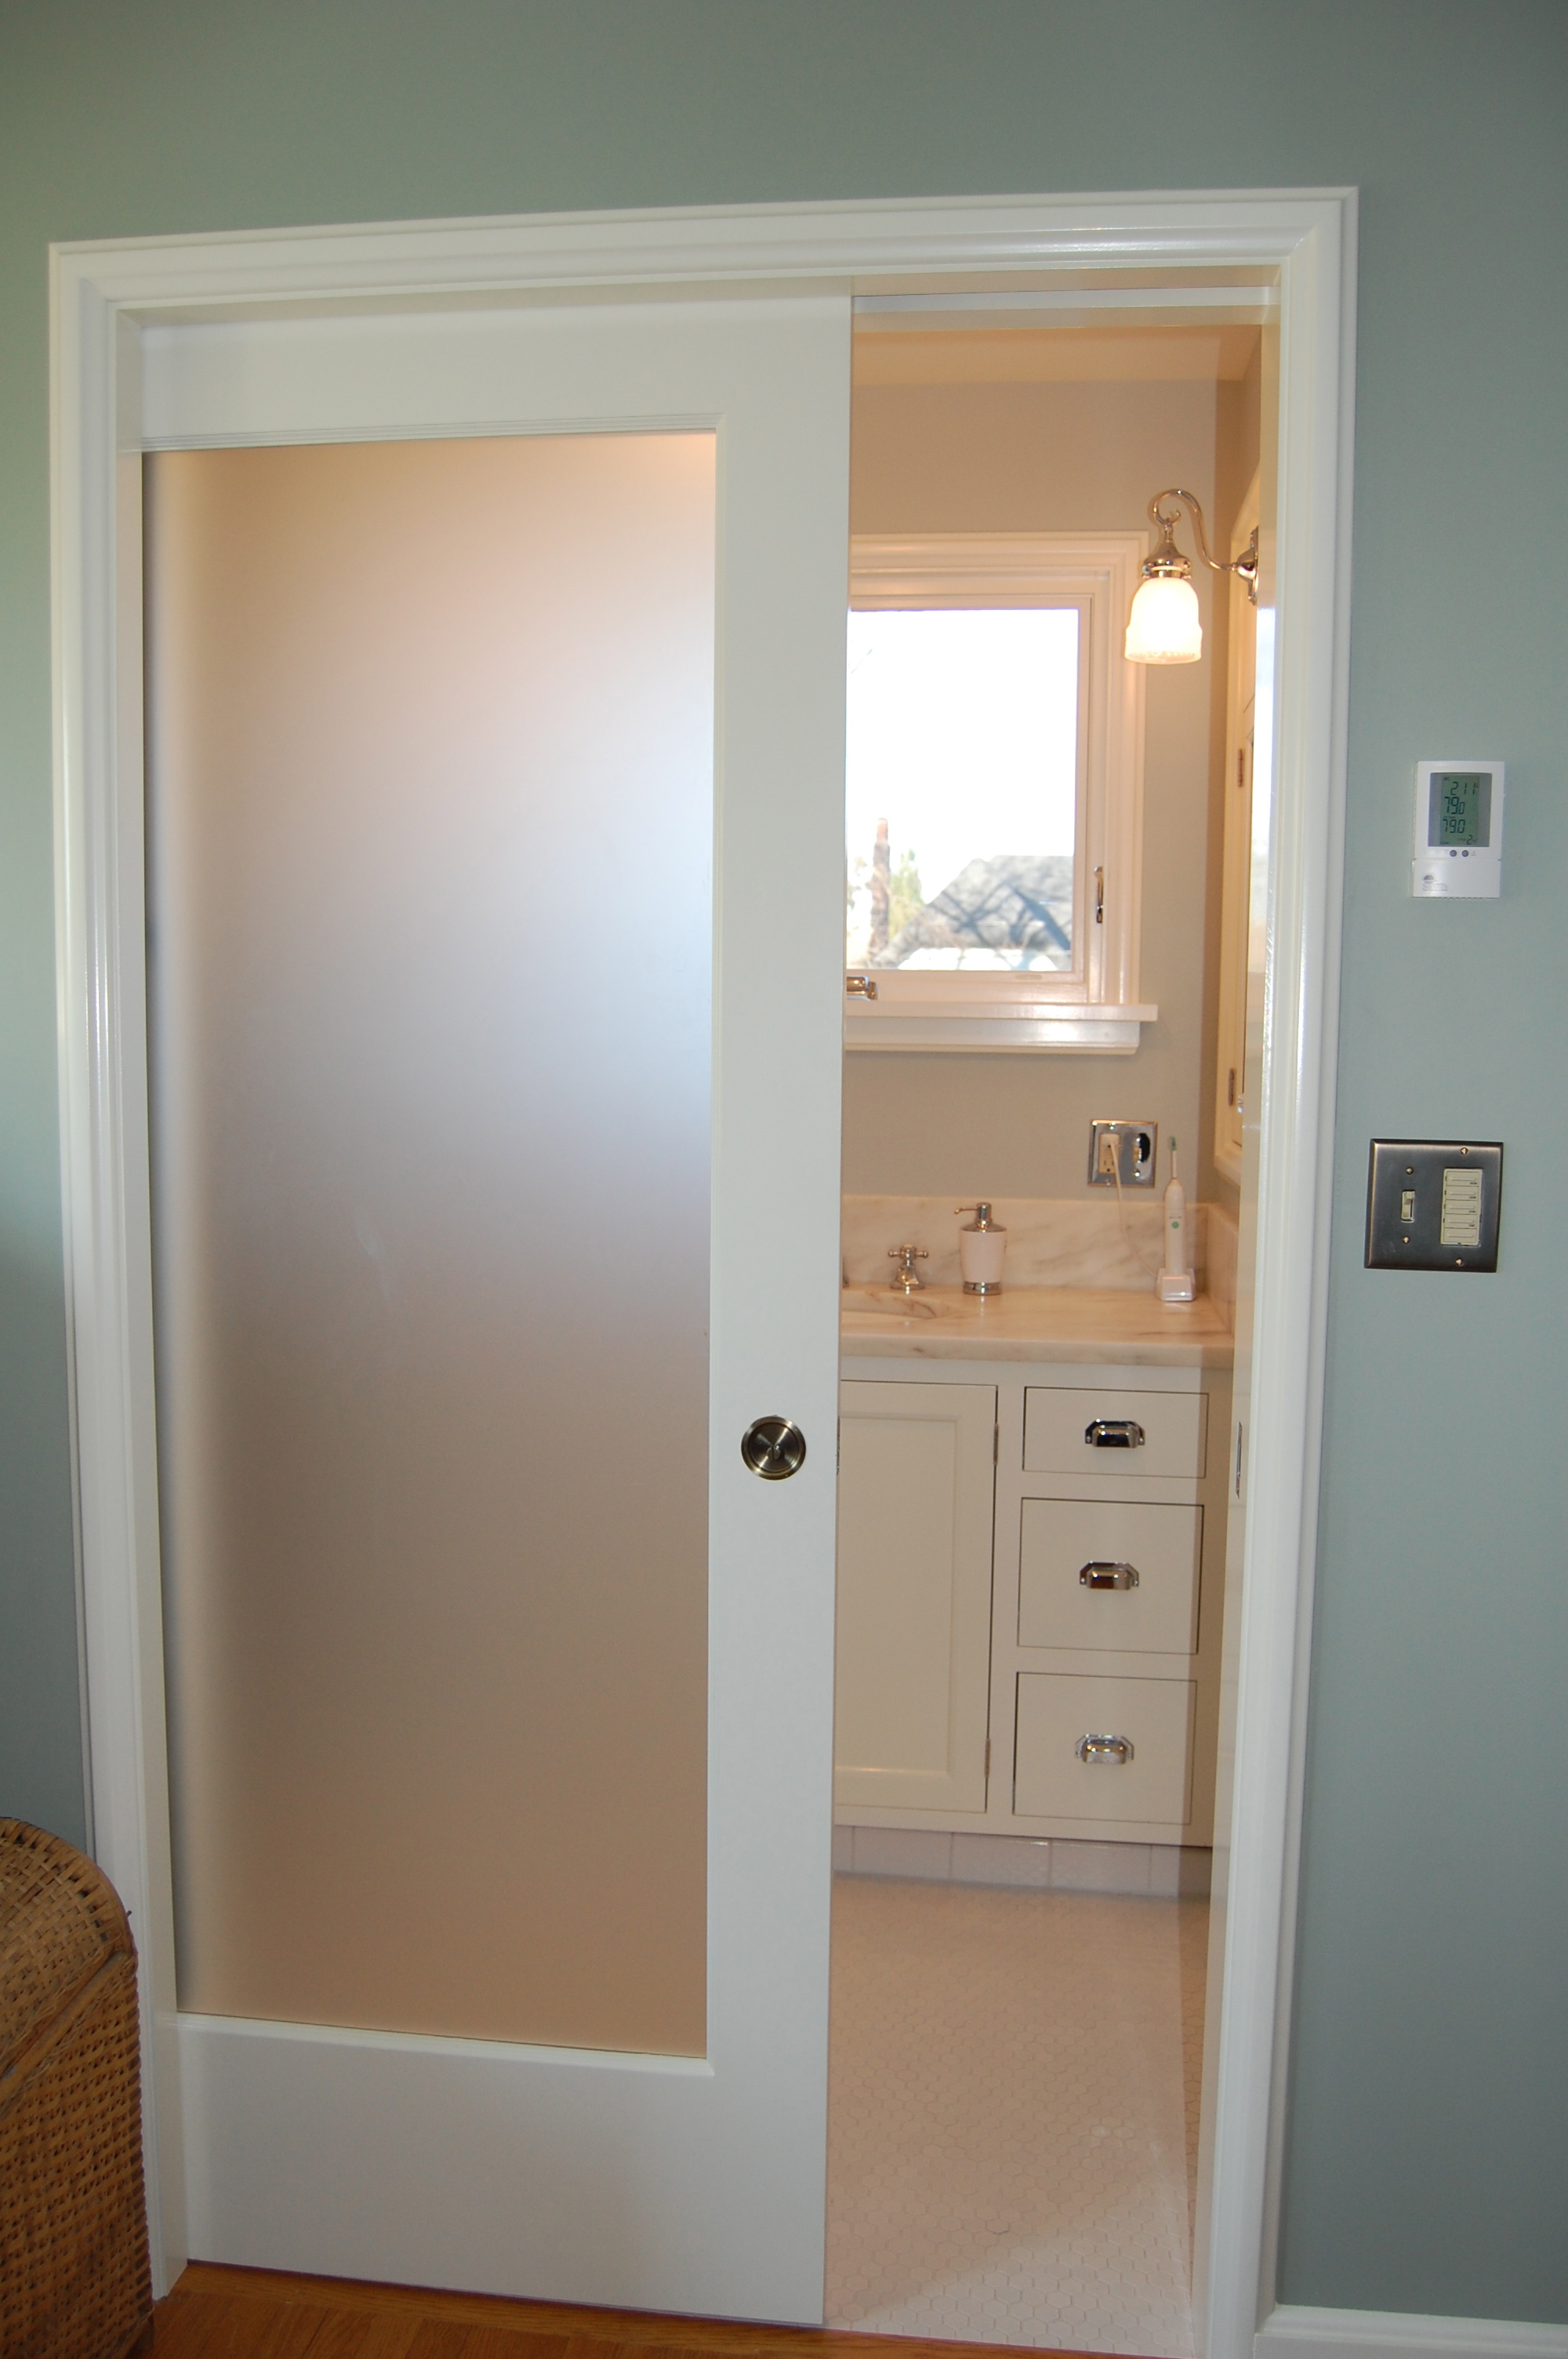 Interior pocket doors with glass panels look modern